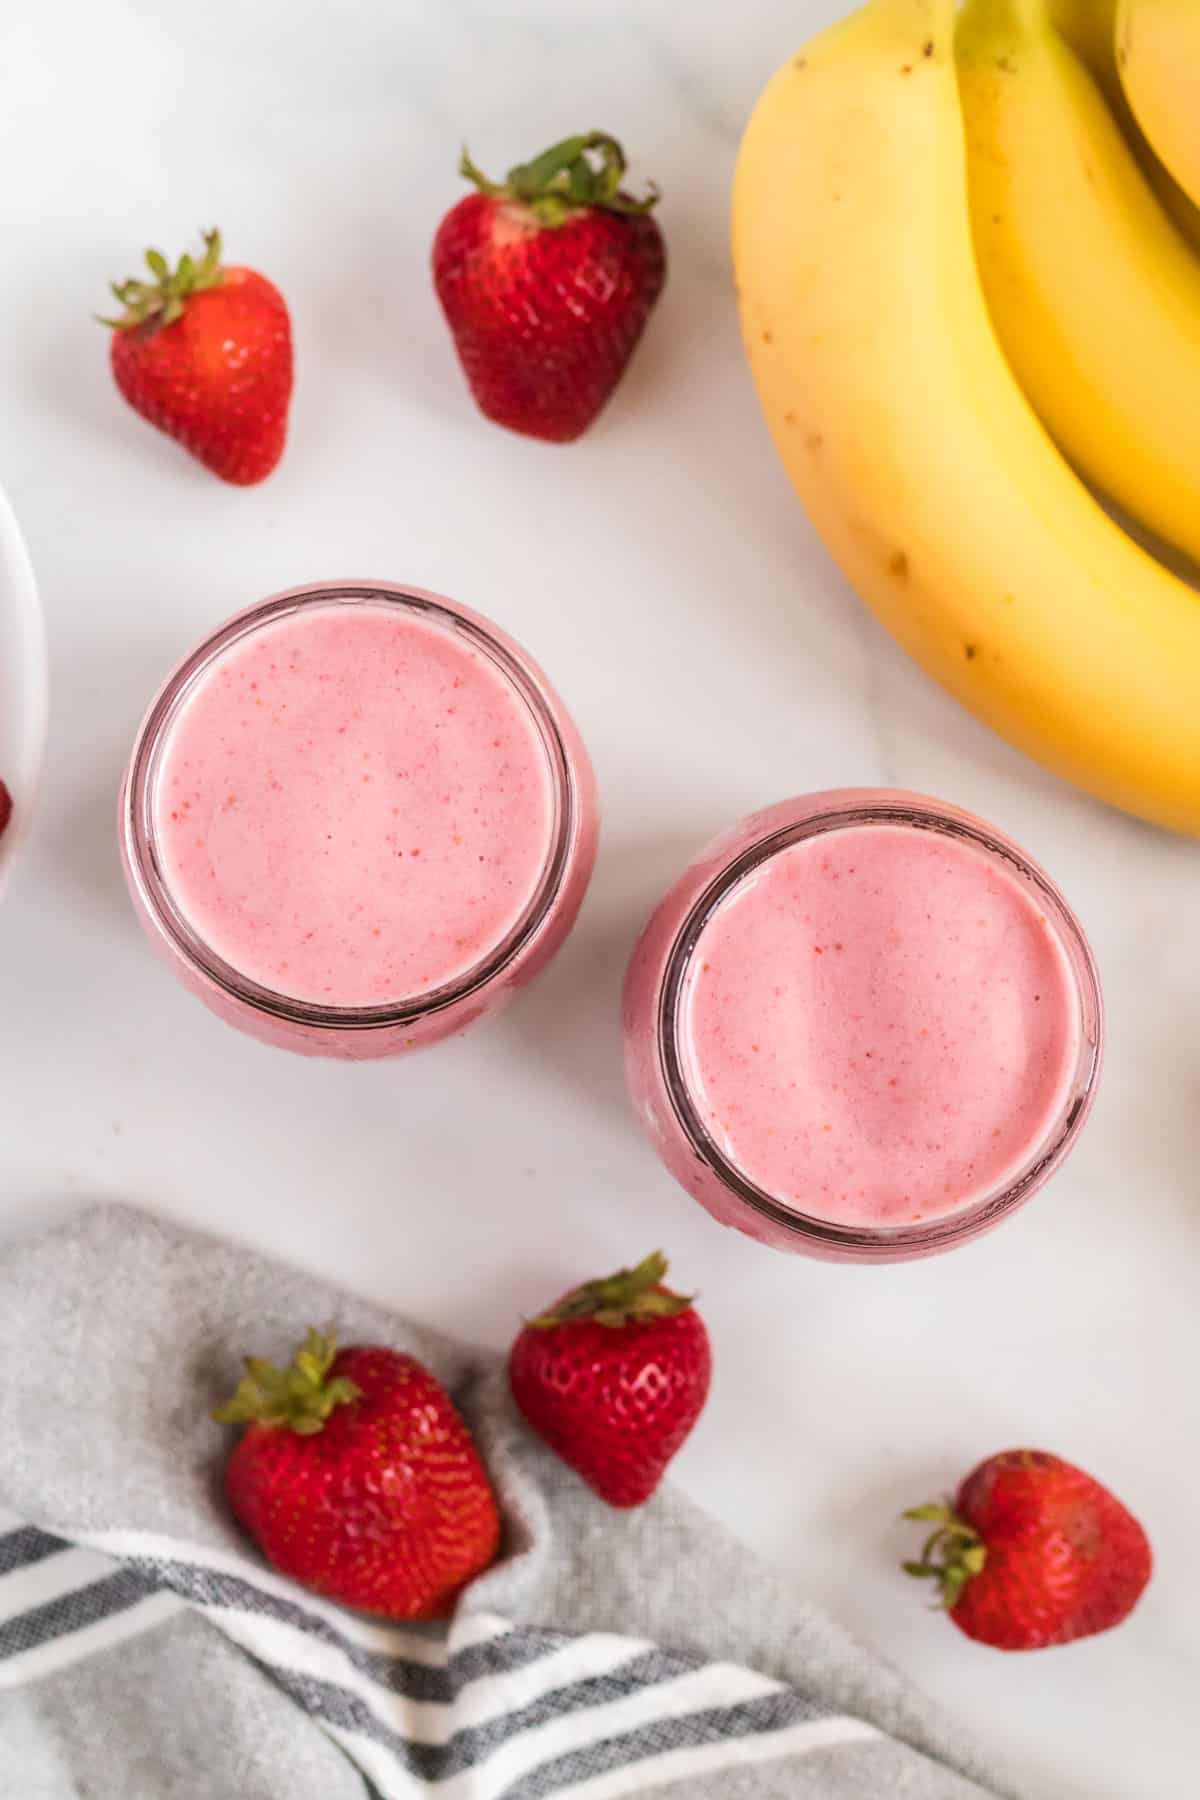 smoothies in glass jars from an overhead view surrounded by strawberries and bananas